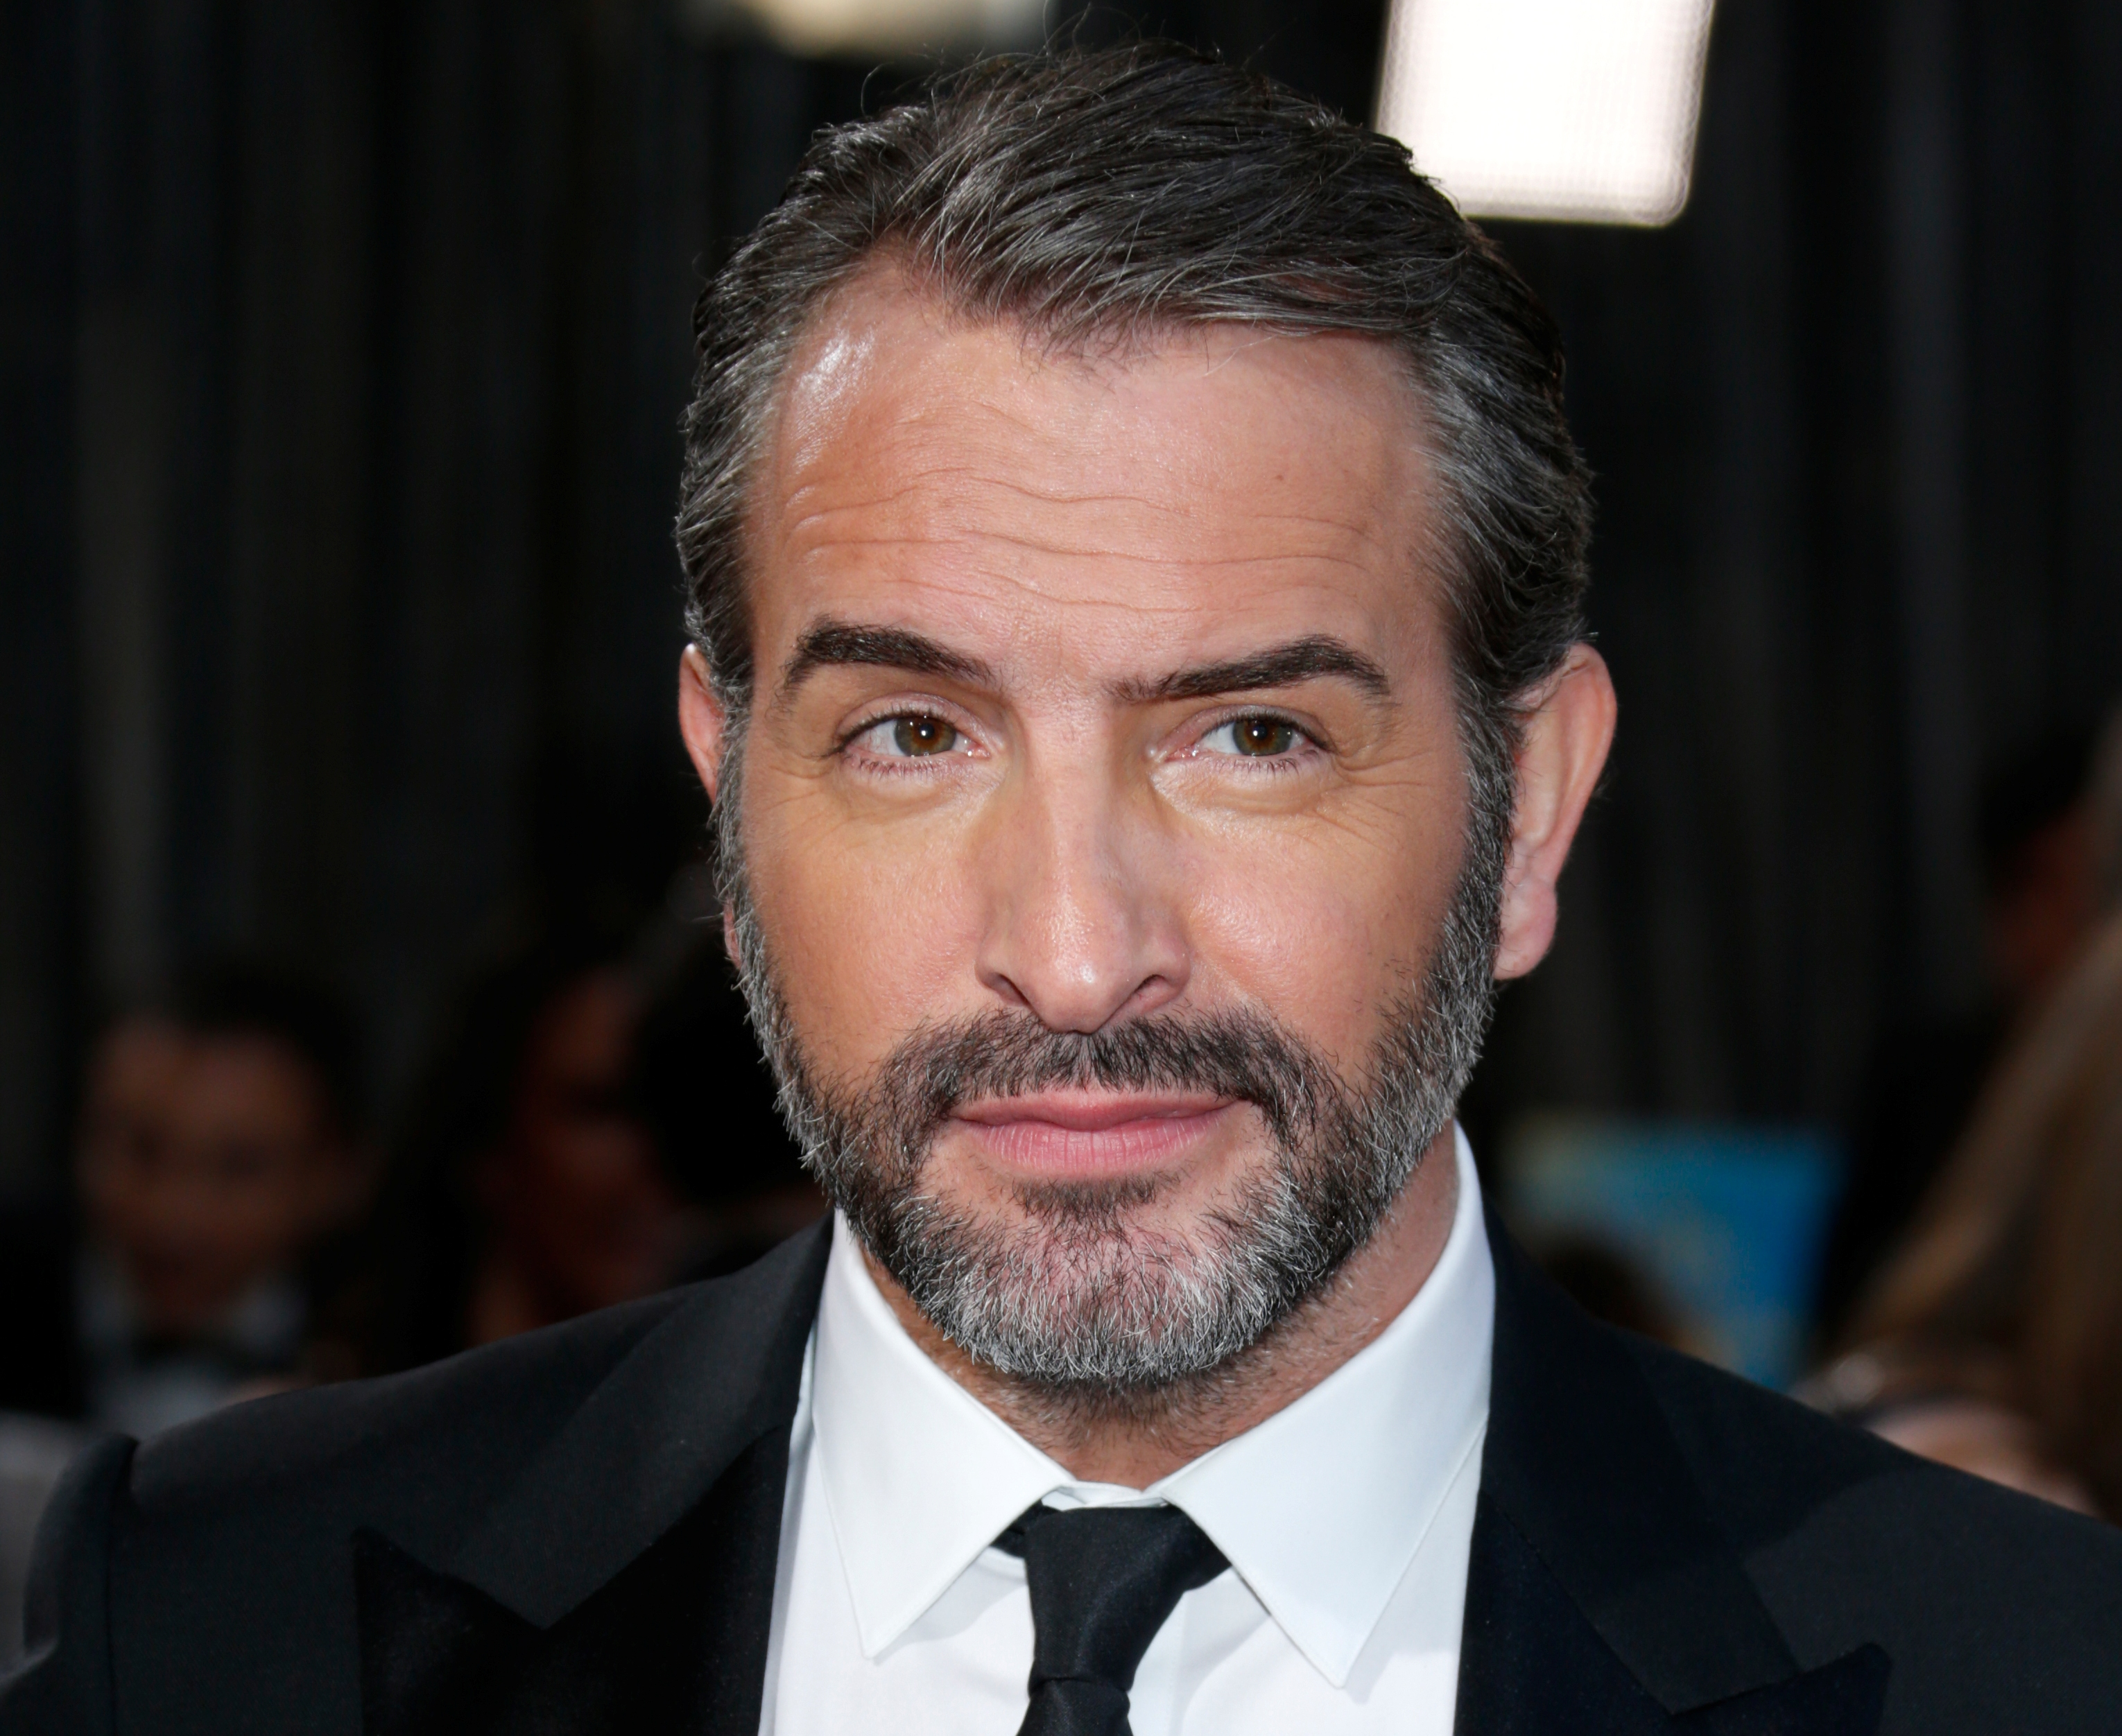 Jean dujardin weight loss 2018 for Dujardin belmondo